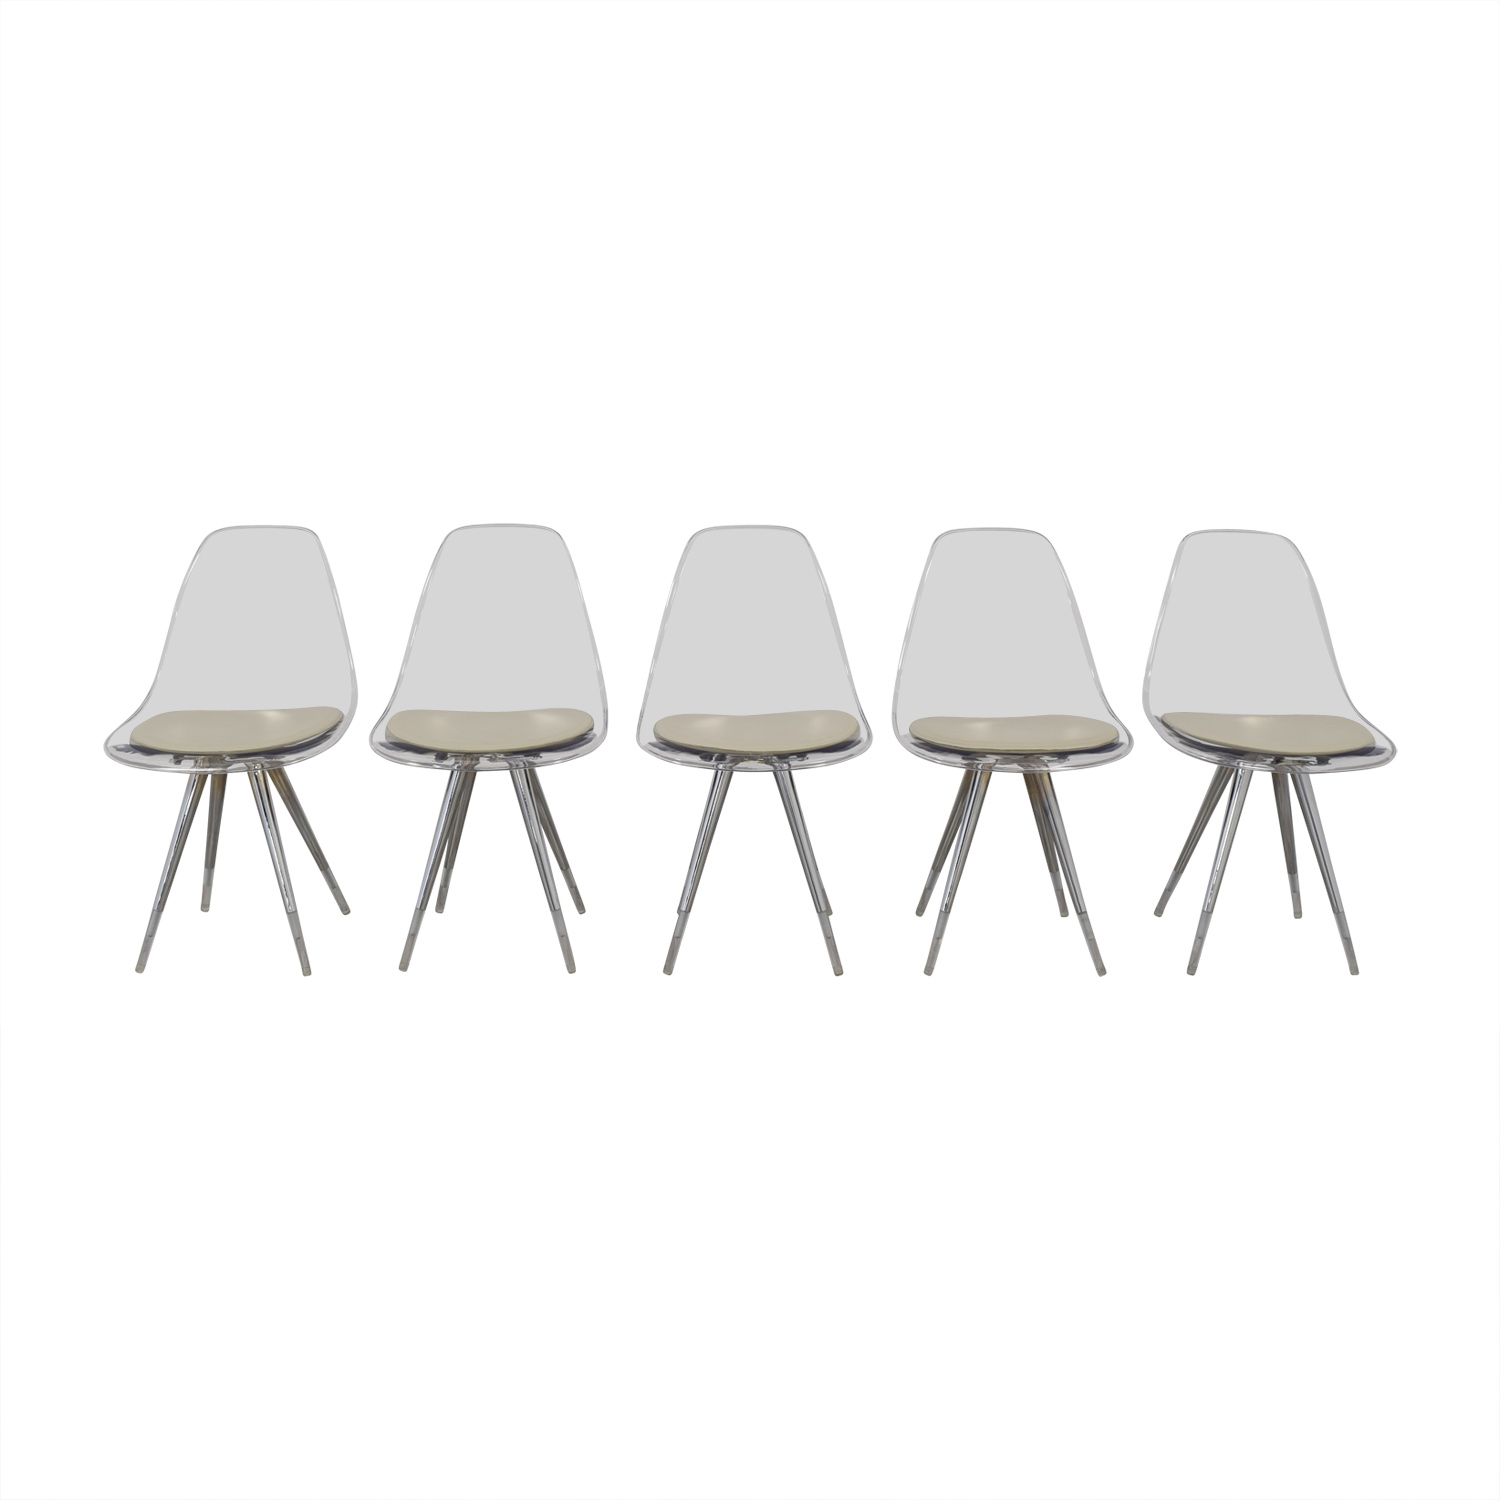 Cite NYC Lucite Dining Chairs with Custom Cushions sale